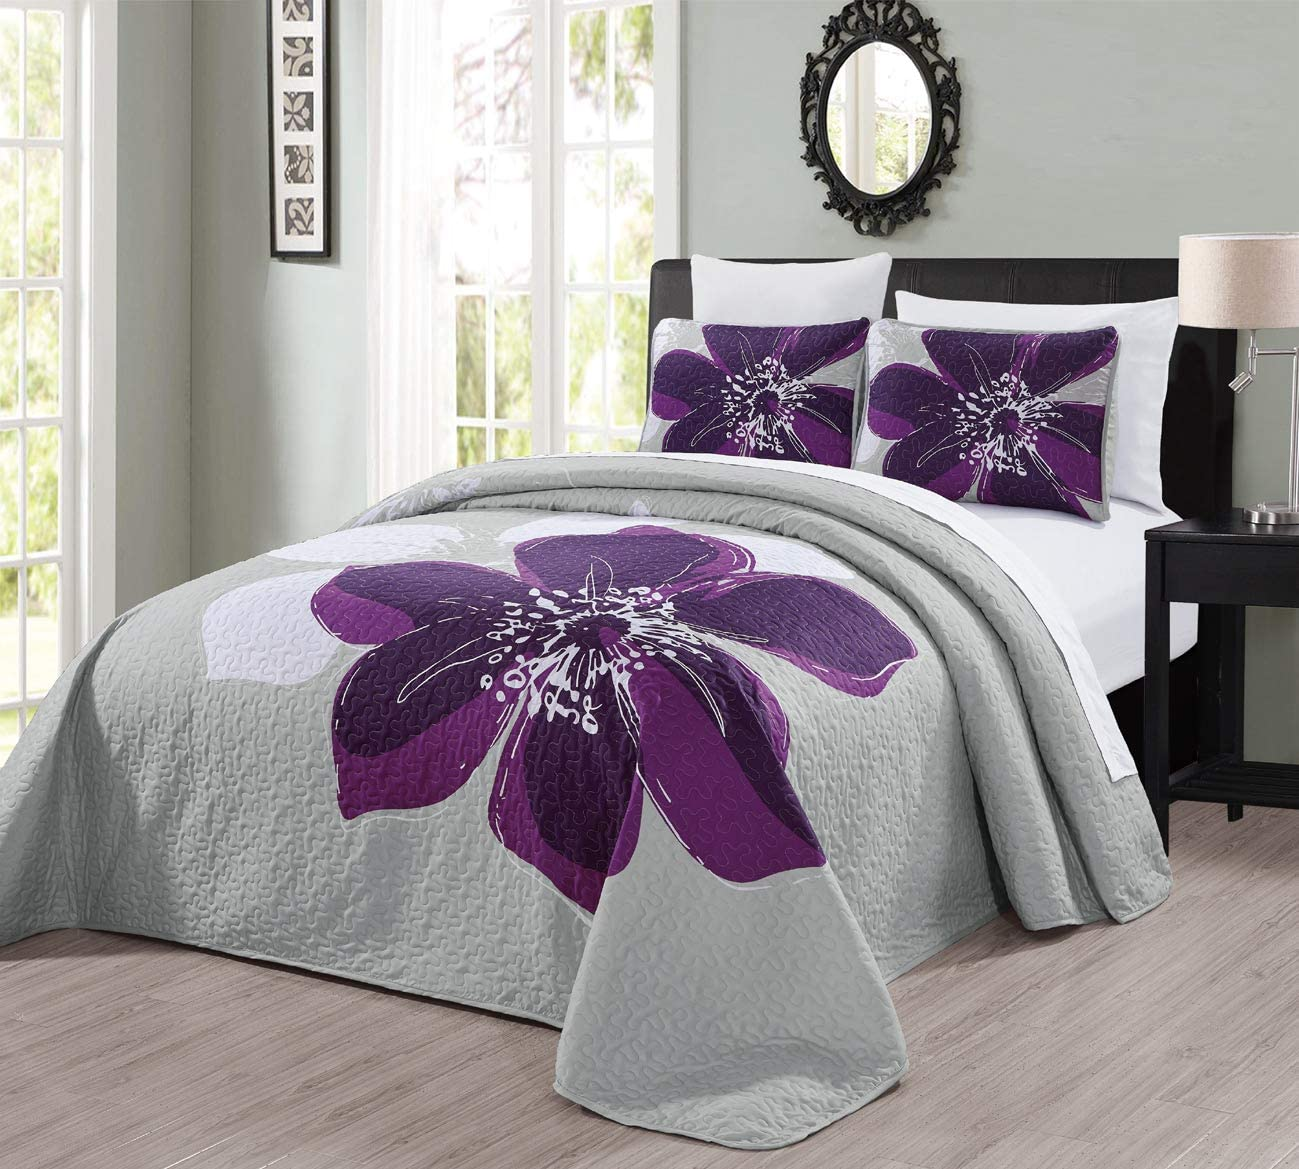 "3-Piece Fine Printed (90"" X 88"") Quilt Set Reversible Bedspread Coverlet (Double) Full Size Bed Cover (Dark Purple, Grey, White Hibiscus Floral)"